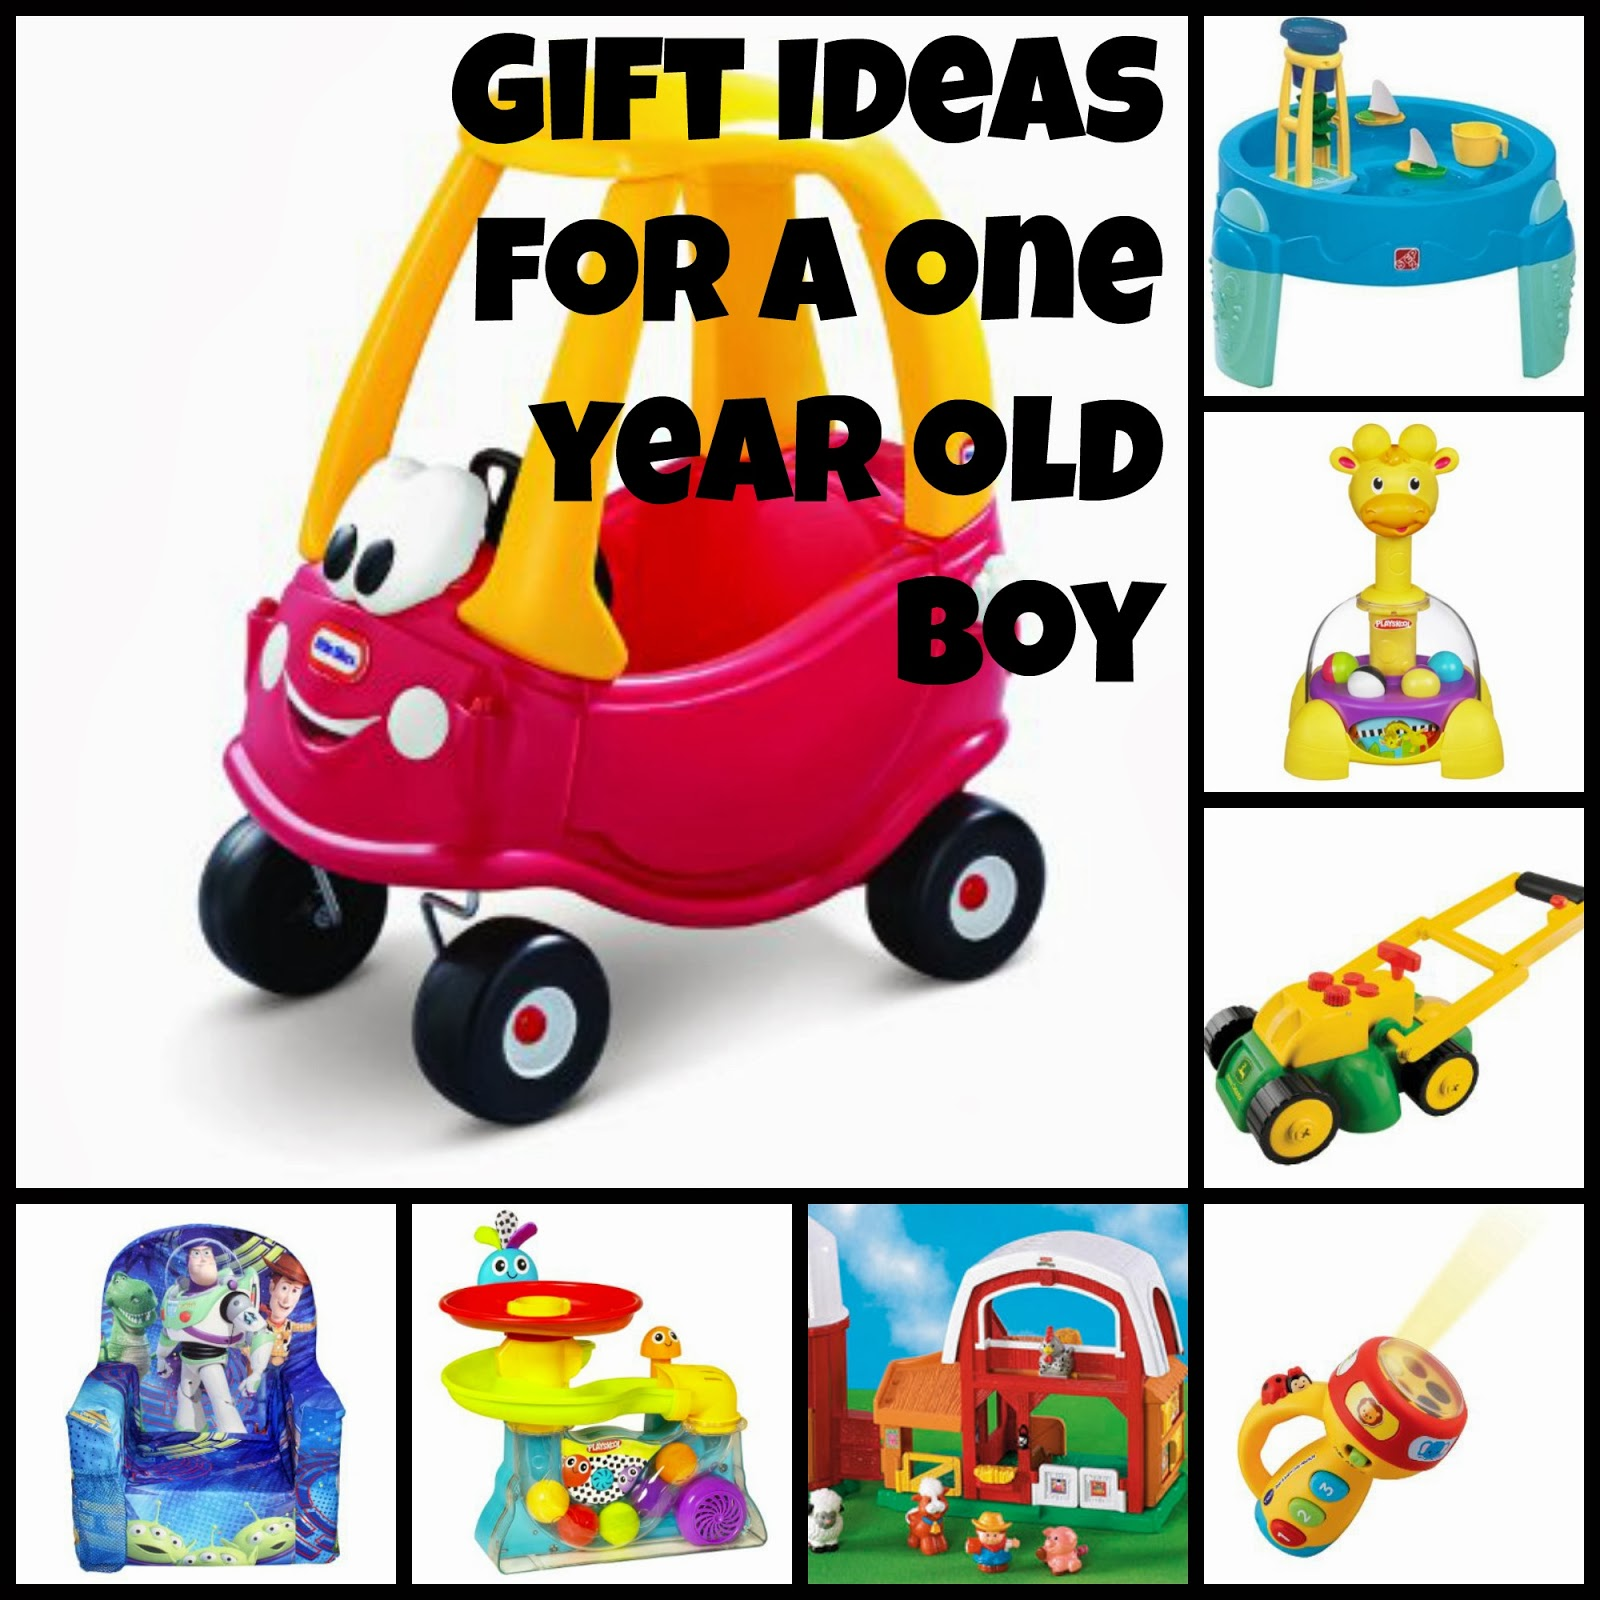 Birthday Ideas For 1 Year Old Boy Image Inspiration of Cake and